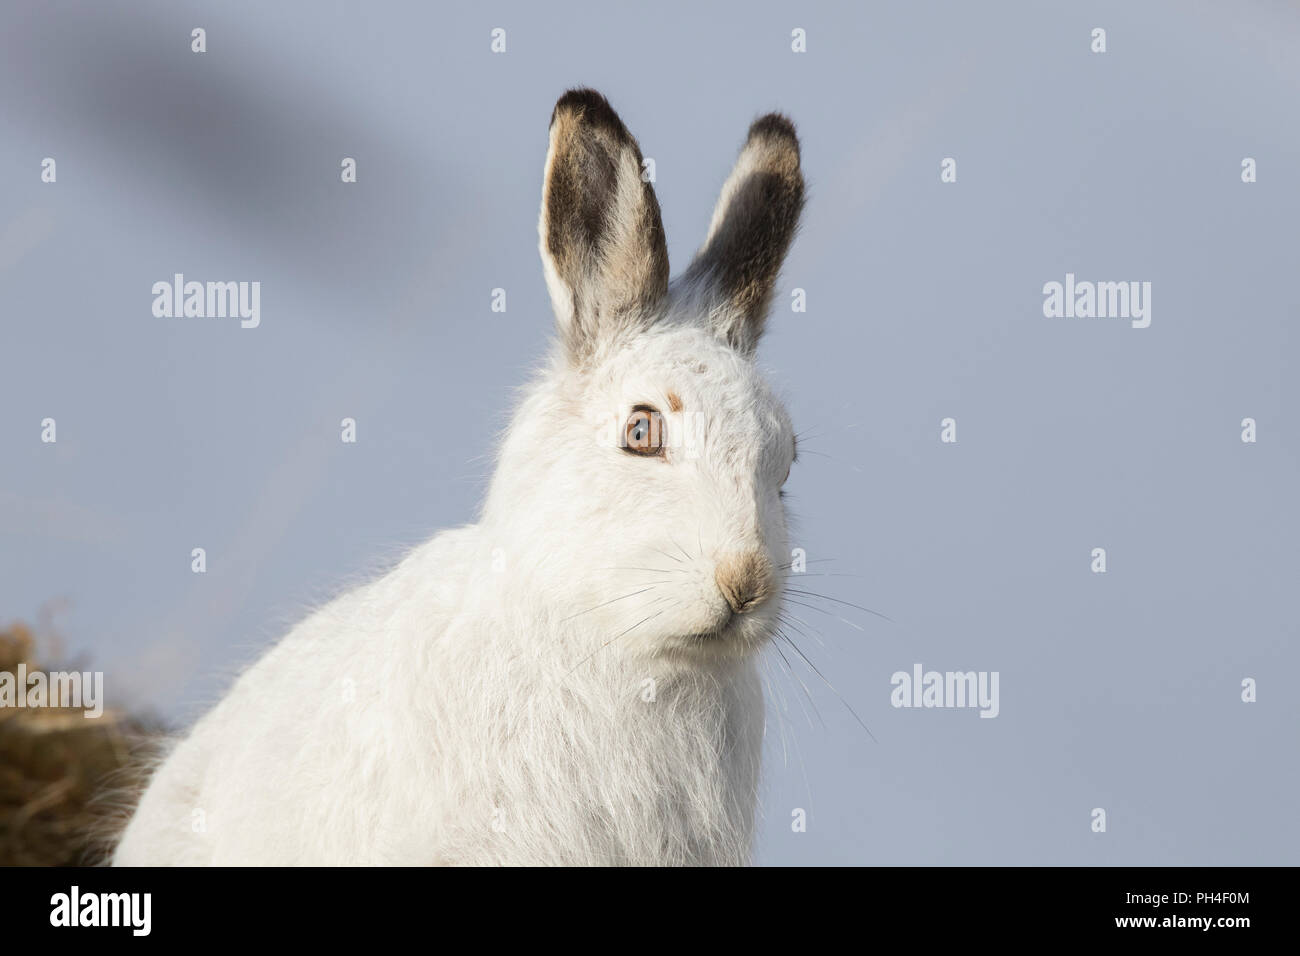 Mountain Hare (Lepus timidus). Portrait of adult in white winter coat (pelage). Cairngorms National Park, Scotland - Stock Image